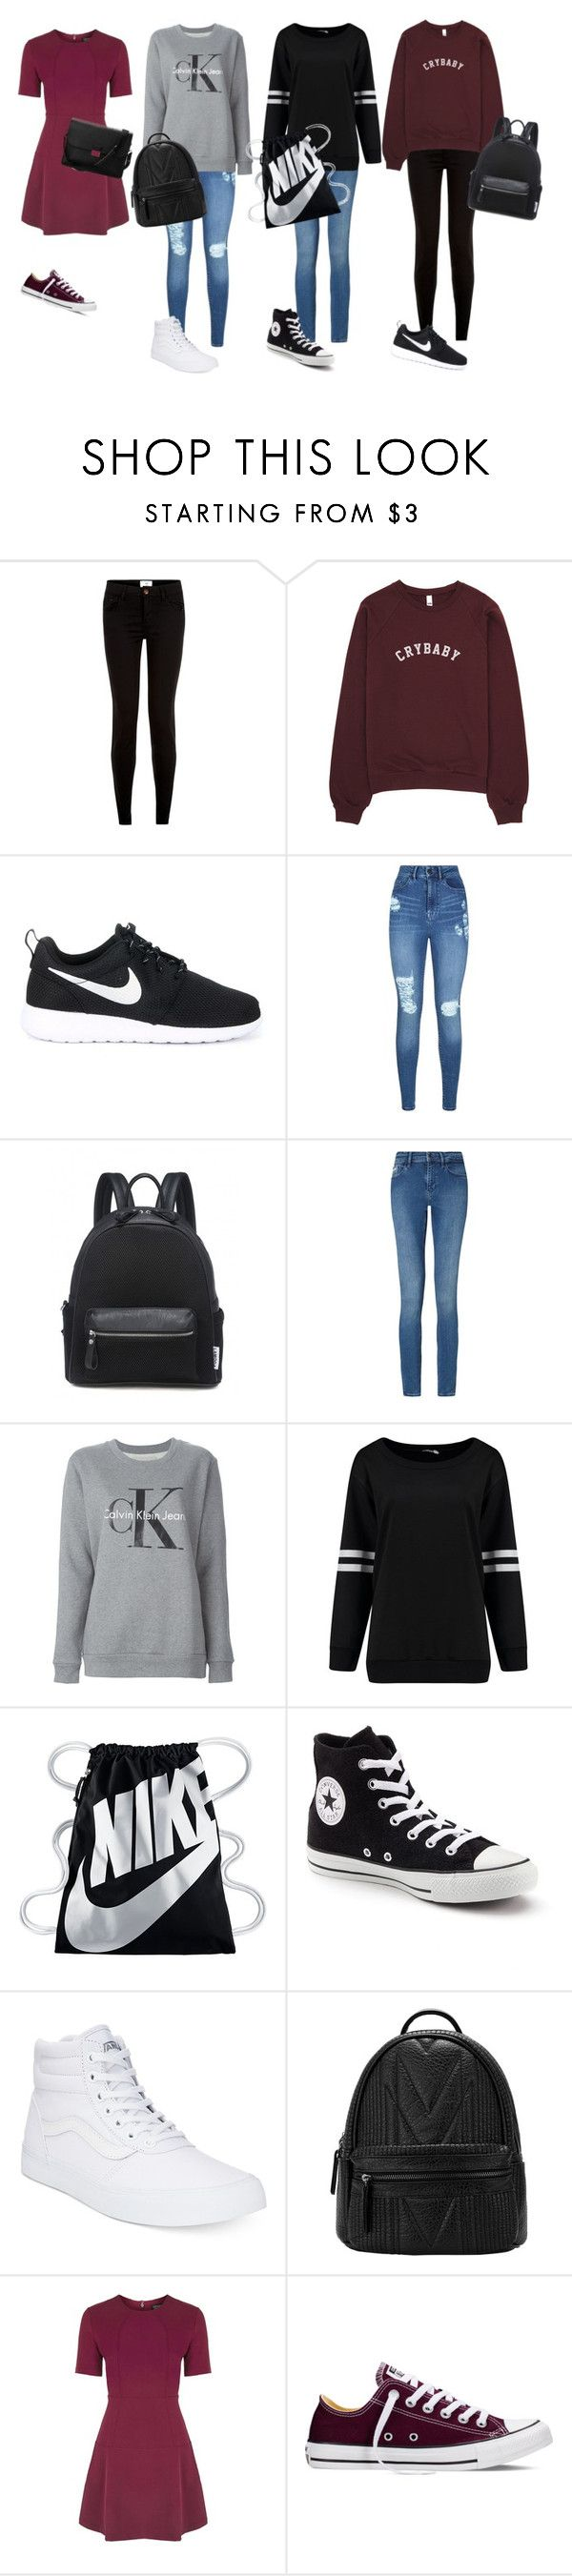 """4 spring outfits"" by barbi2003 on Polyvore featuring NIKE, Lipsy, Calvin Klein, Calvin Klein Jeans, Converse, Vans, Topshop and Aspinal of London"